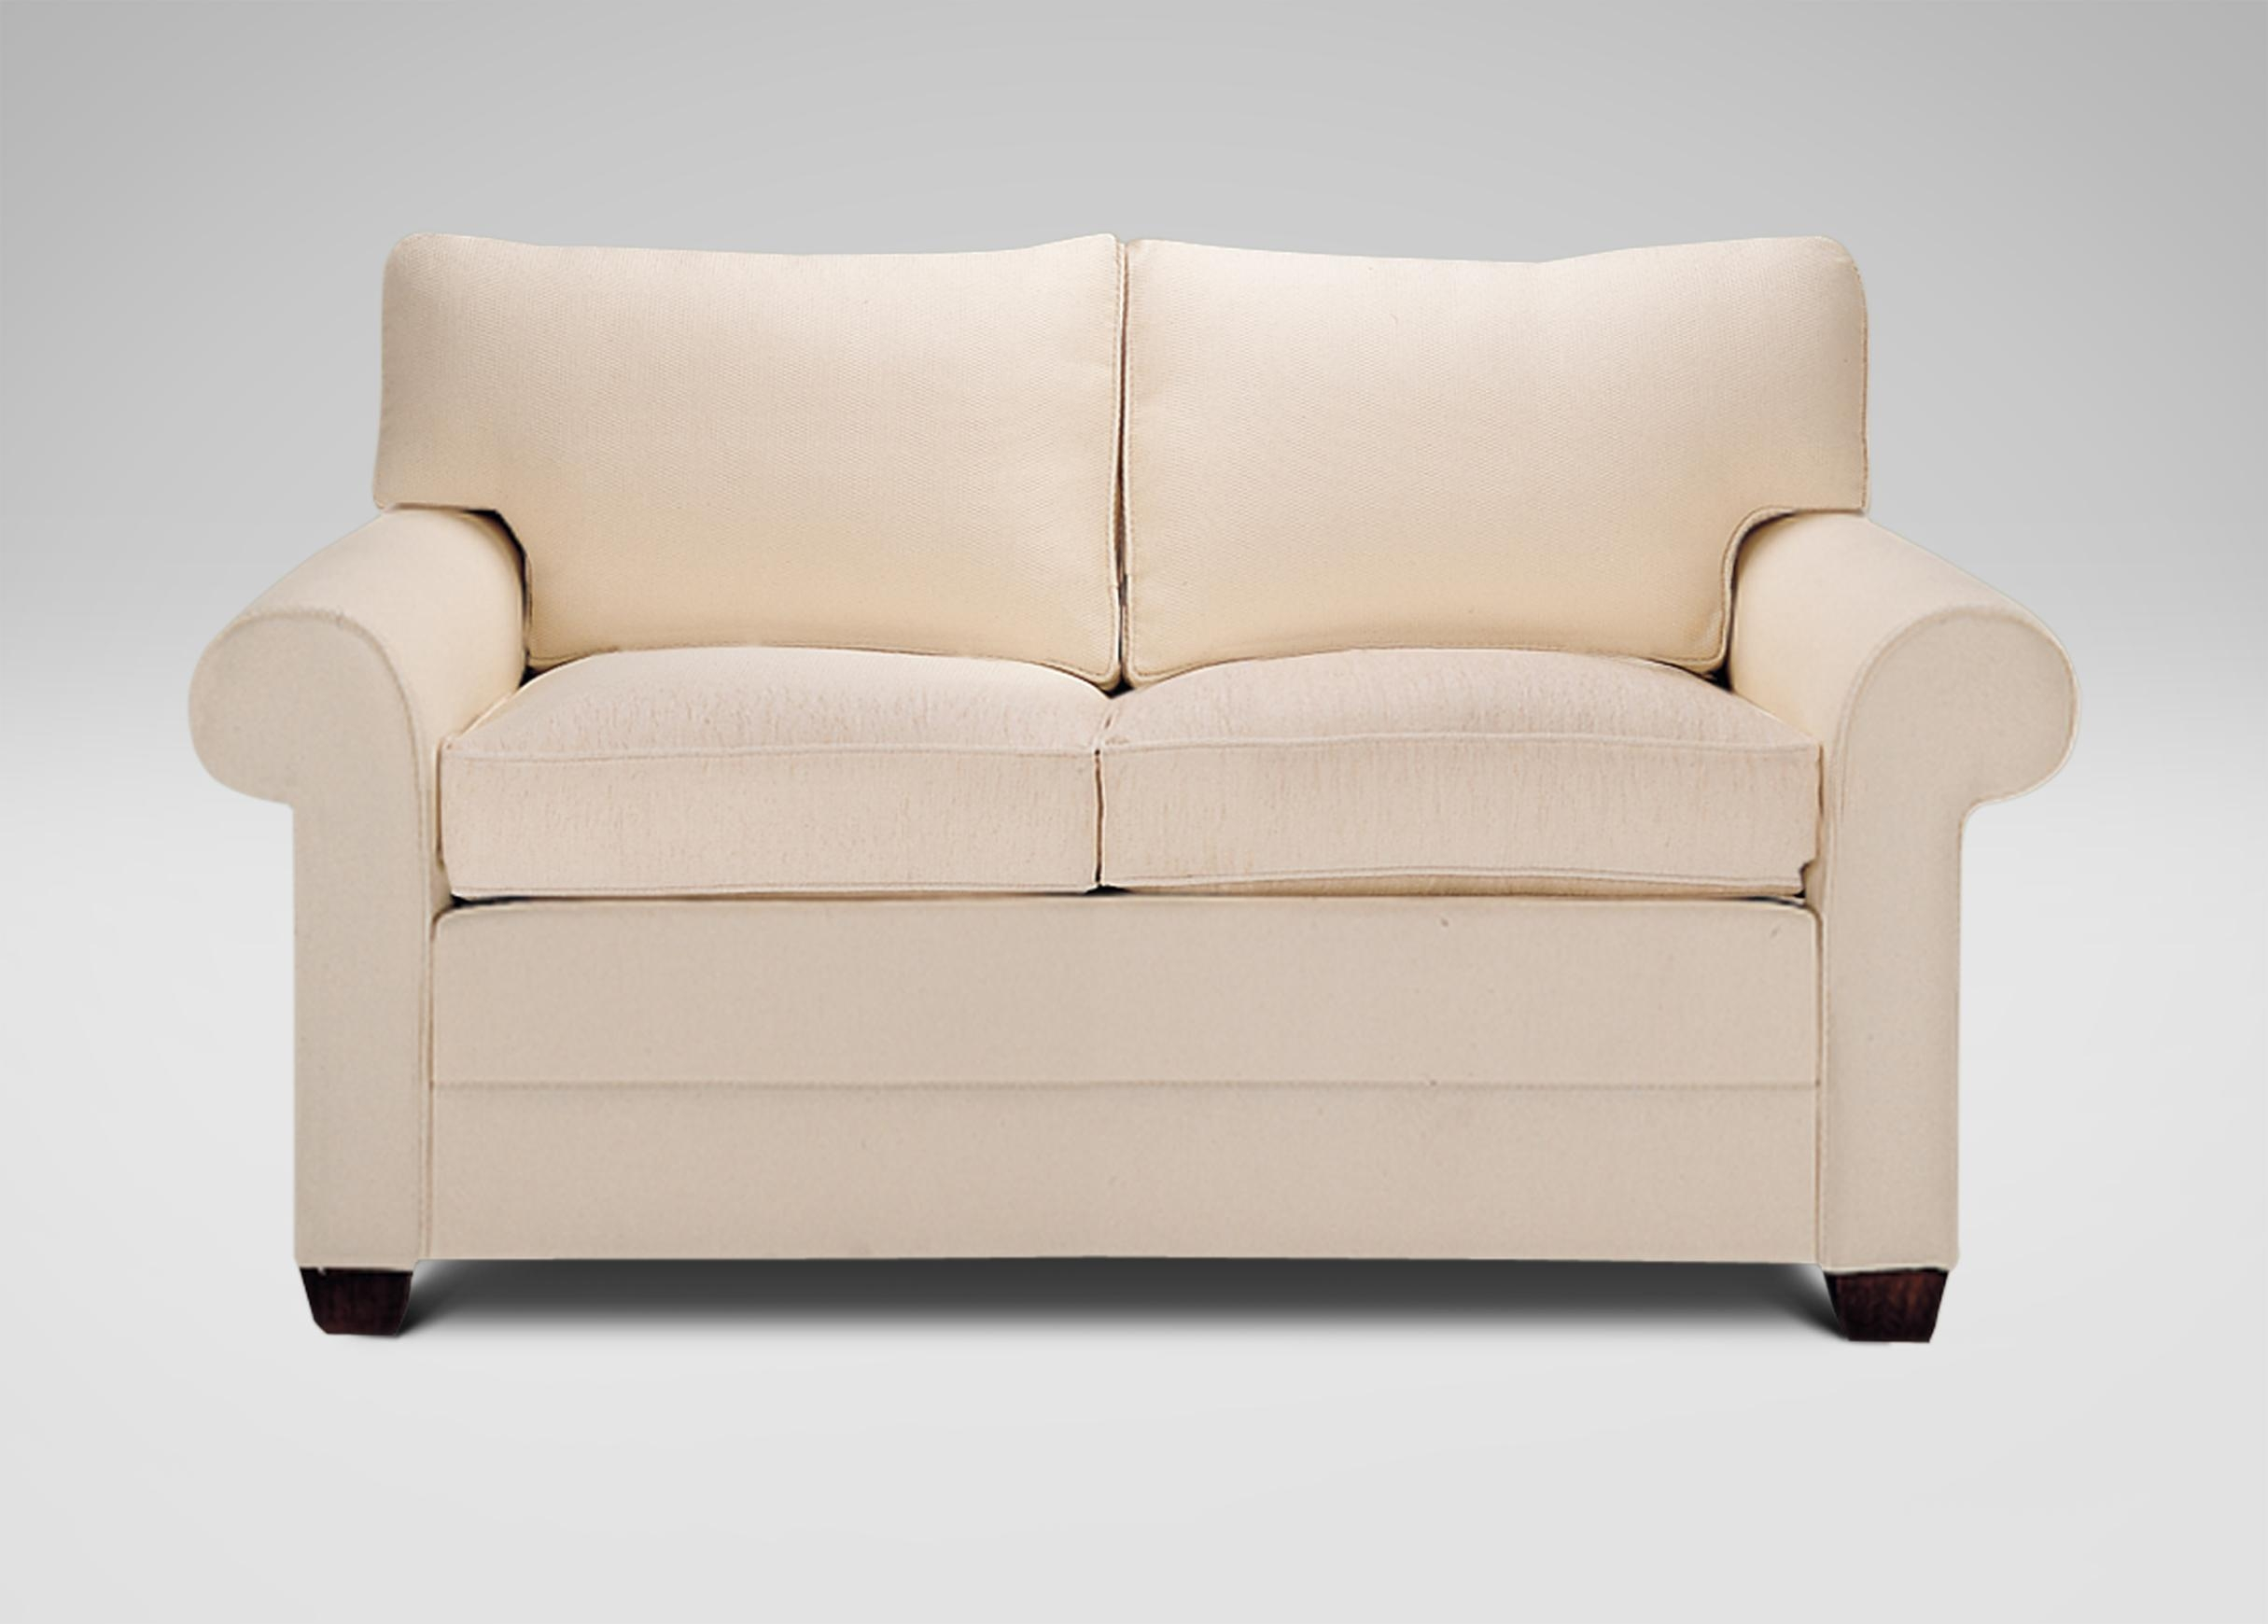 Bennett Roll Arm Loveseat – Ethan Allen In Ethan Allen Sofas And Chairs (Image 5 of 20)